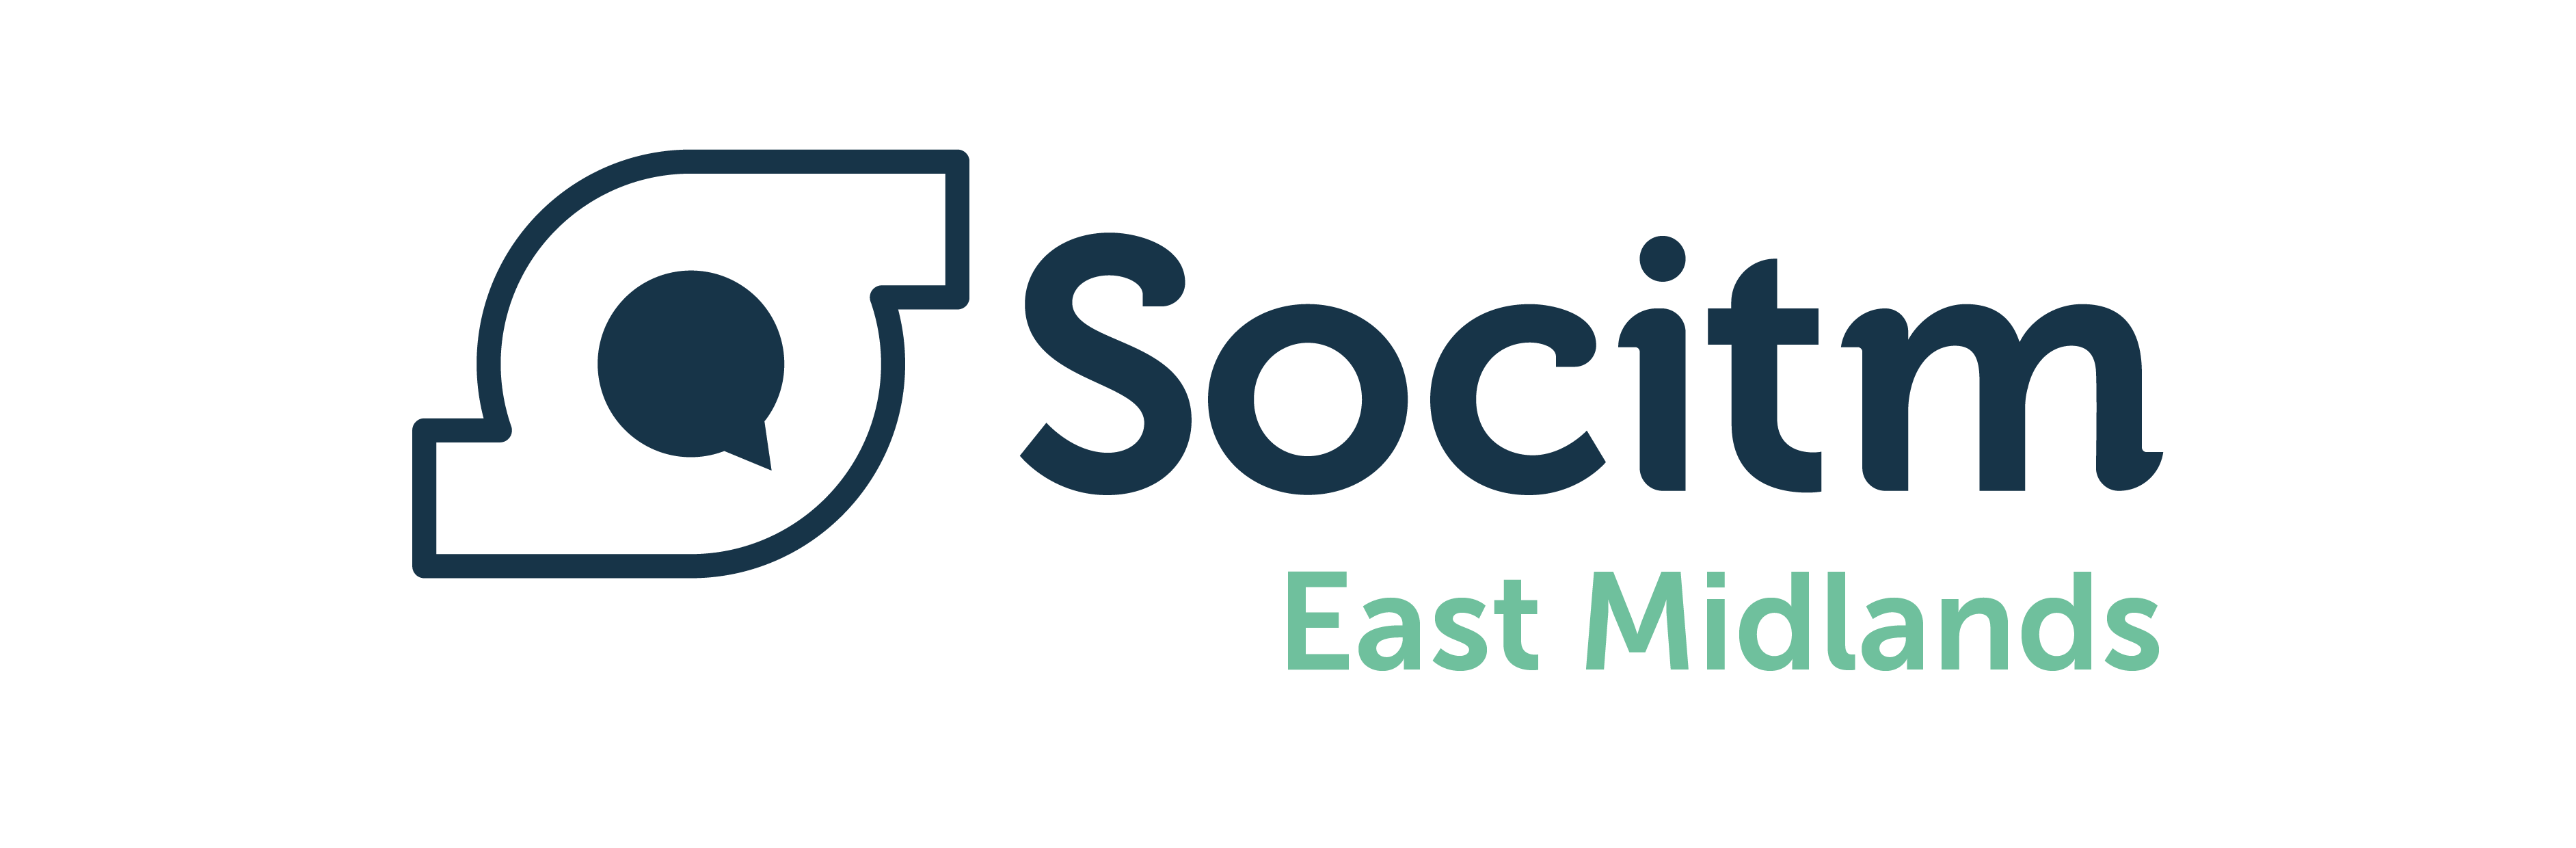 East Midlands Share Local - 8th November 2019